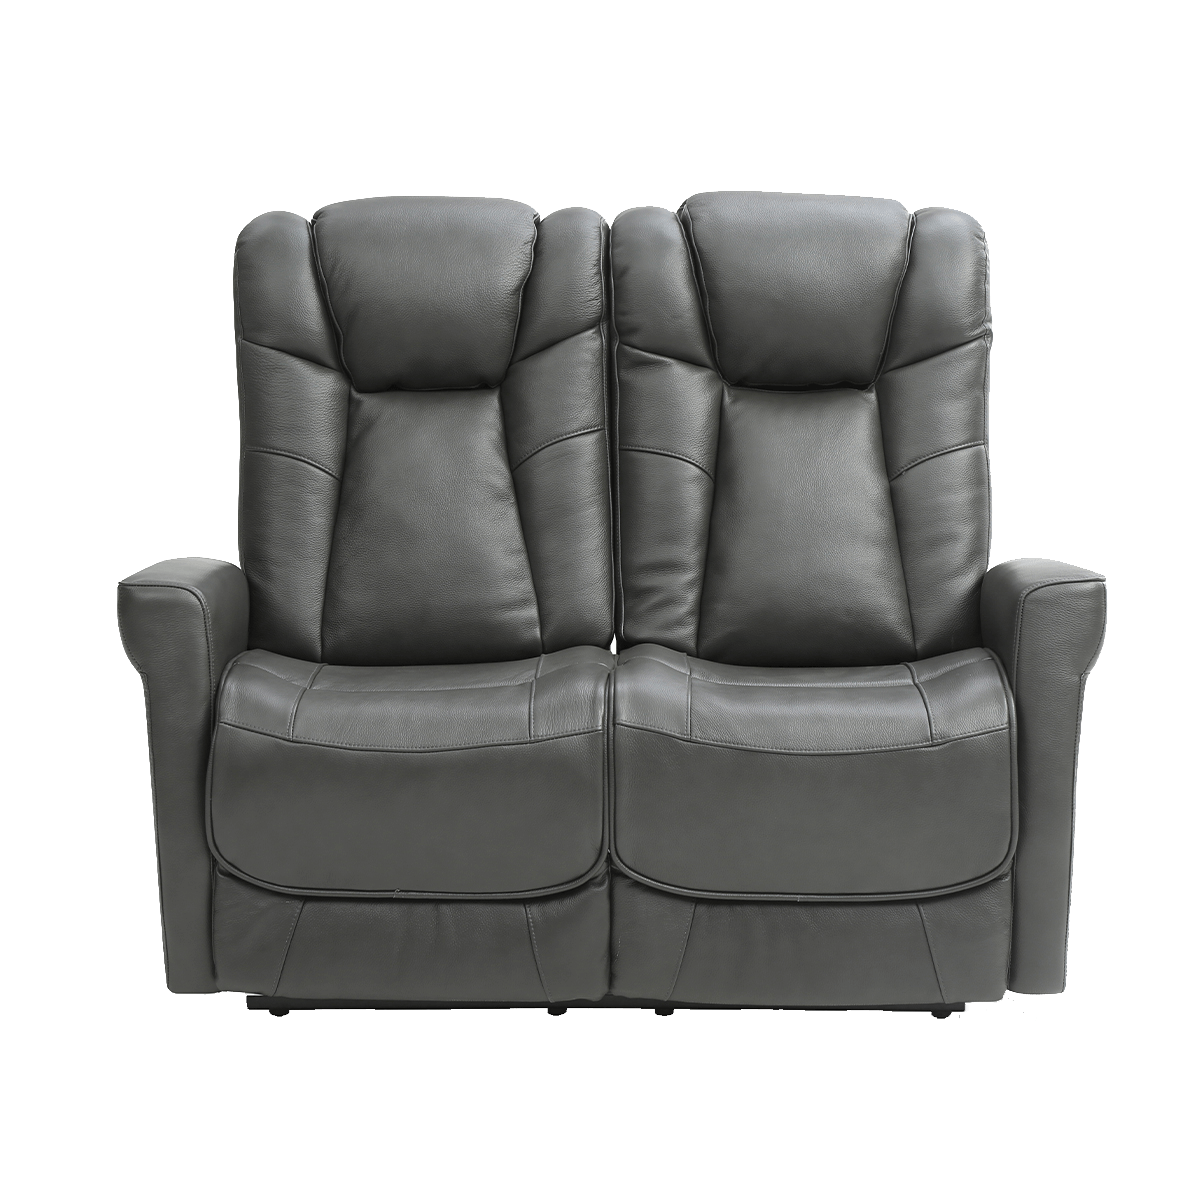 Loveseat Limoge